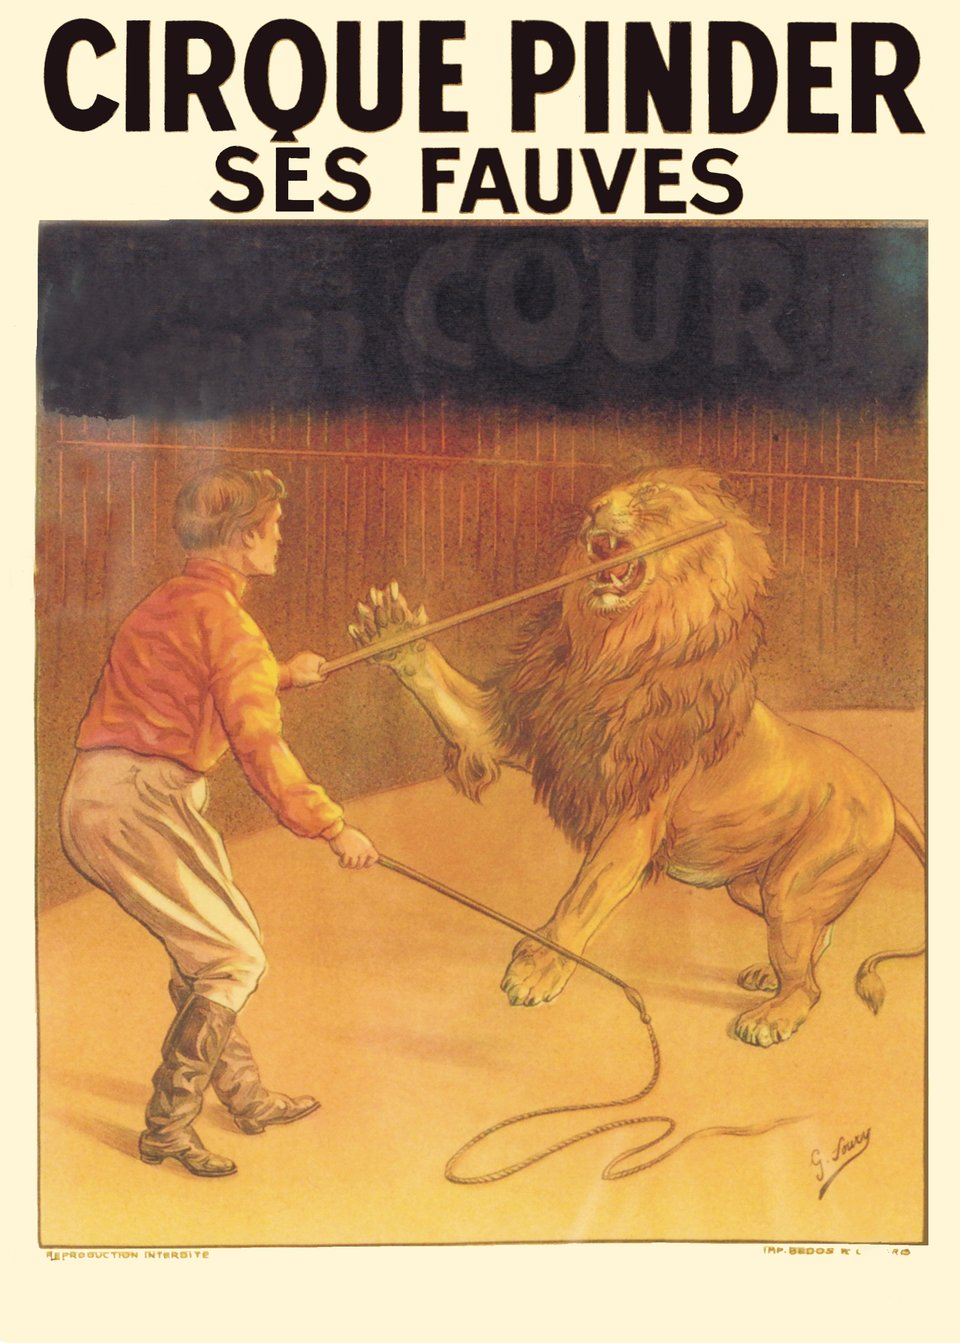 Cirque Pinder, ses fauves – Affiche ancienne –  ANONYME – 1900